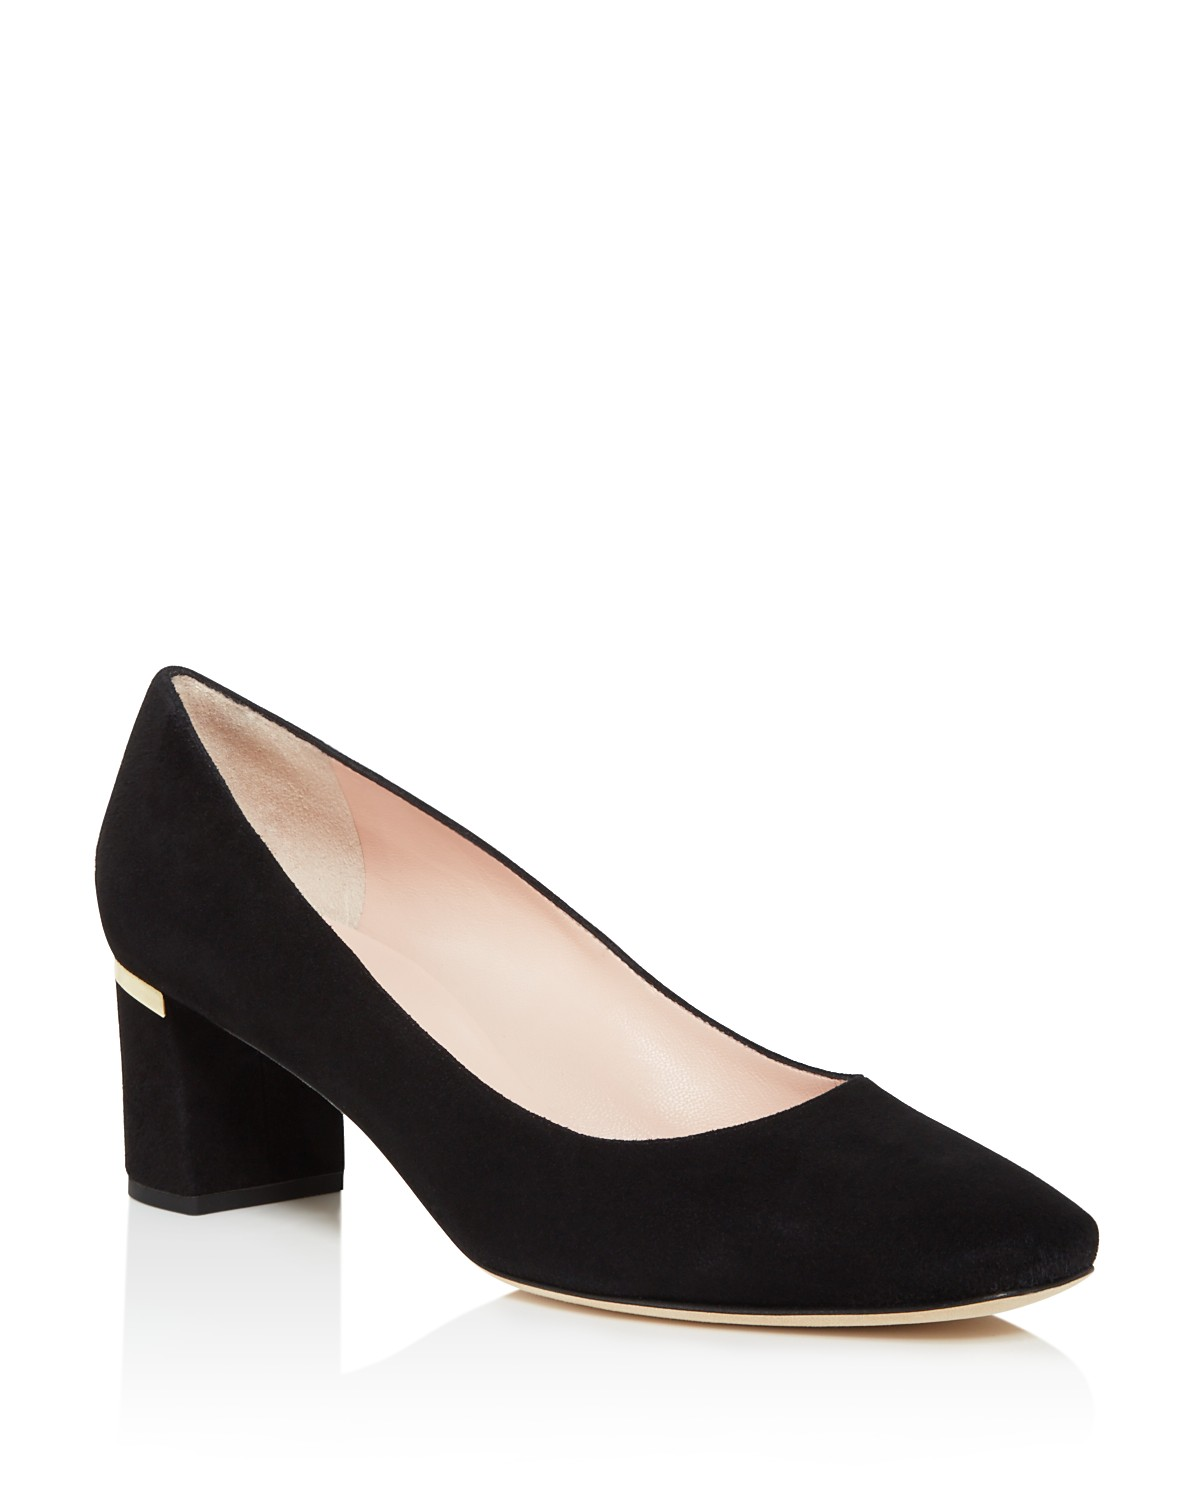 Kate Spade New York Dolores Too Mid Heel Pumps - 100% Exclusive 9PT3SS